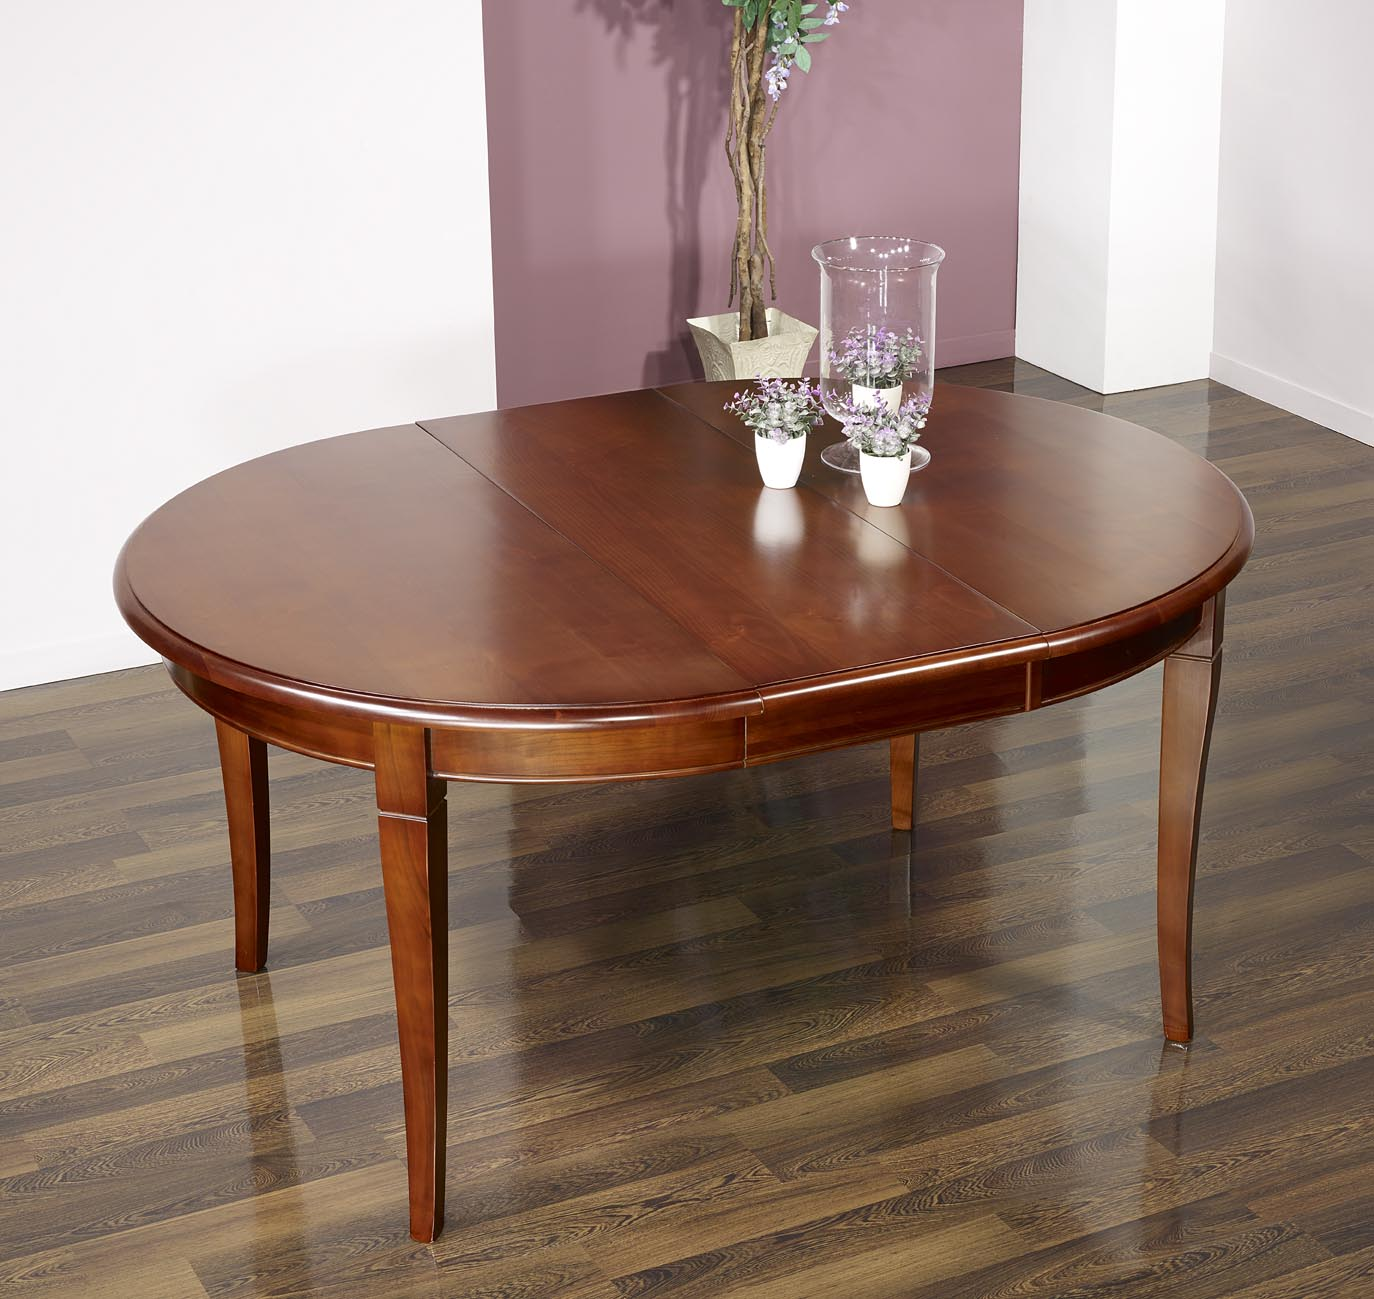 Table ronde 4 pieds sabres en merisier massif de style for Table ronde rallonge 12 personnes